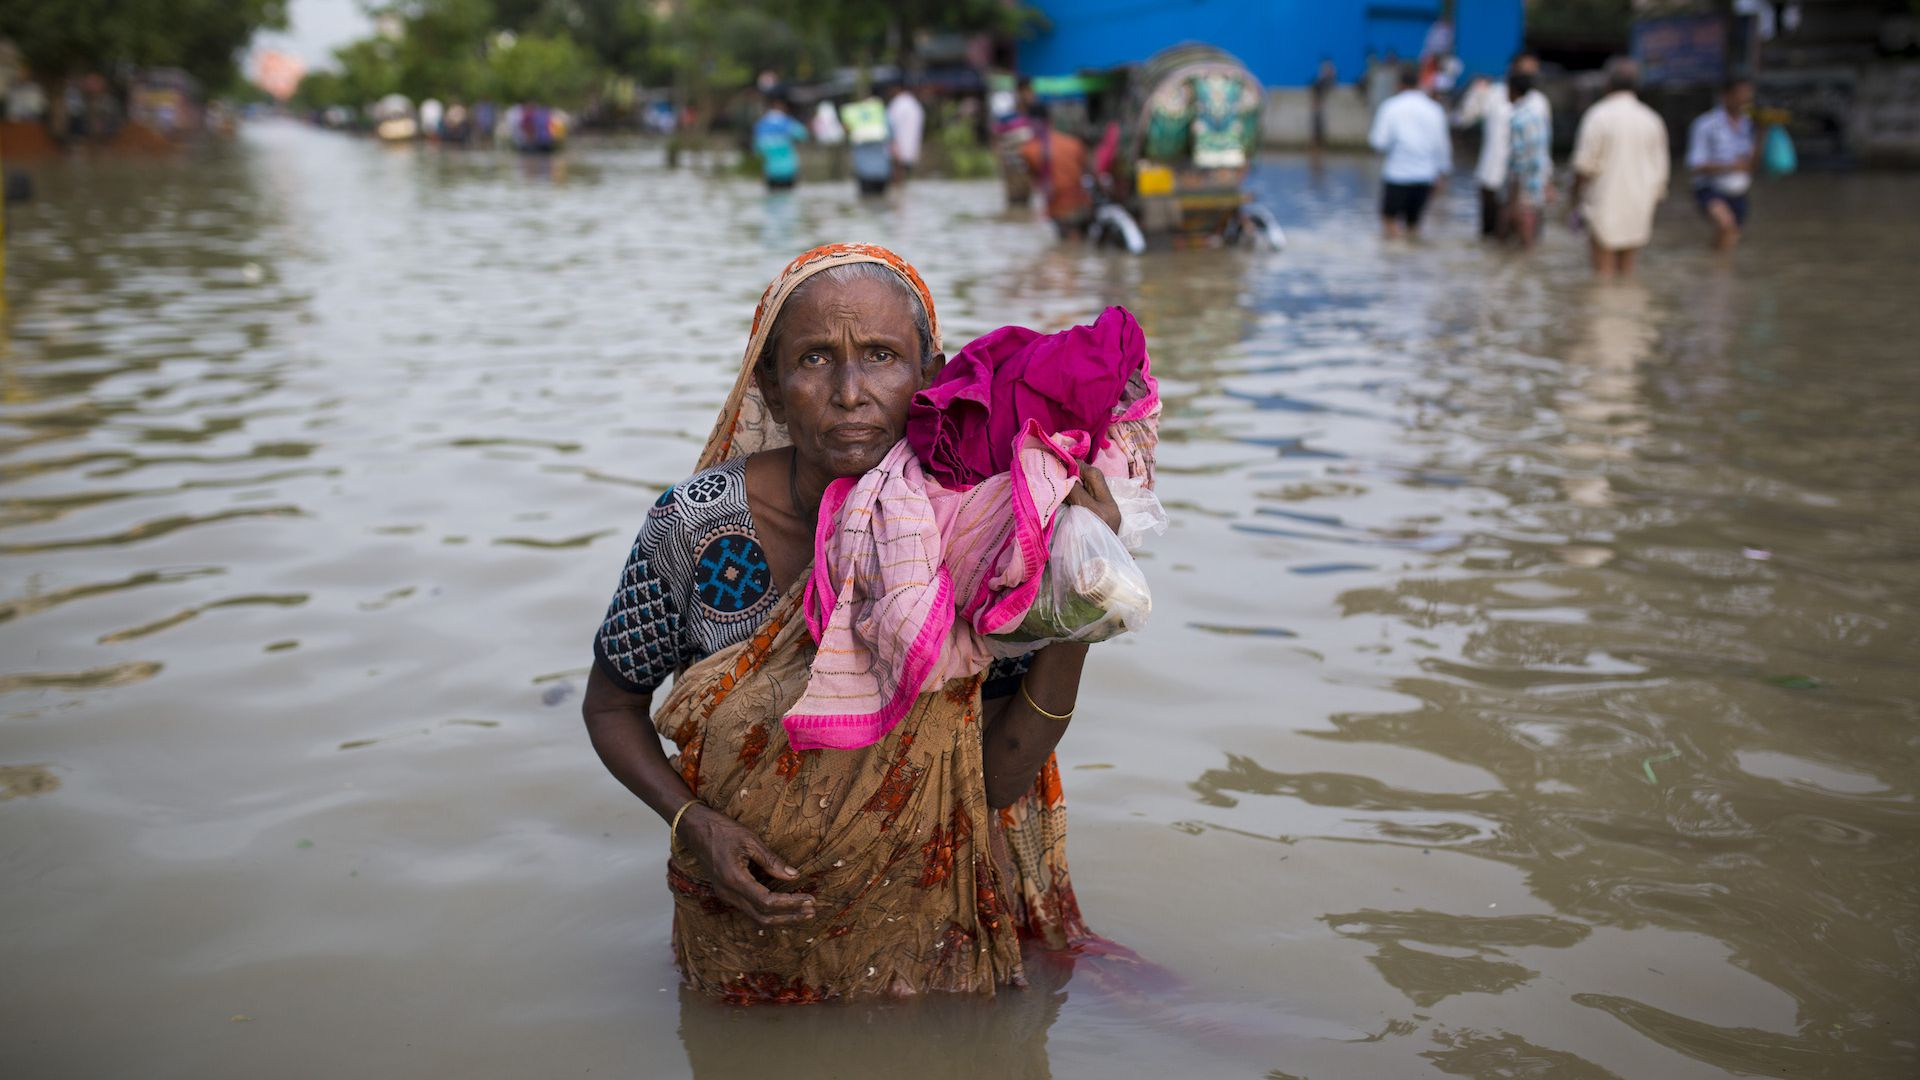 Sea level rise in Bangladesh will be more severe under a 2-degree scenario, as shown in a new U.N. IPCC report.